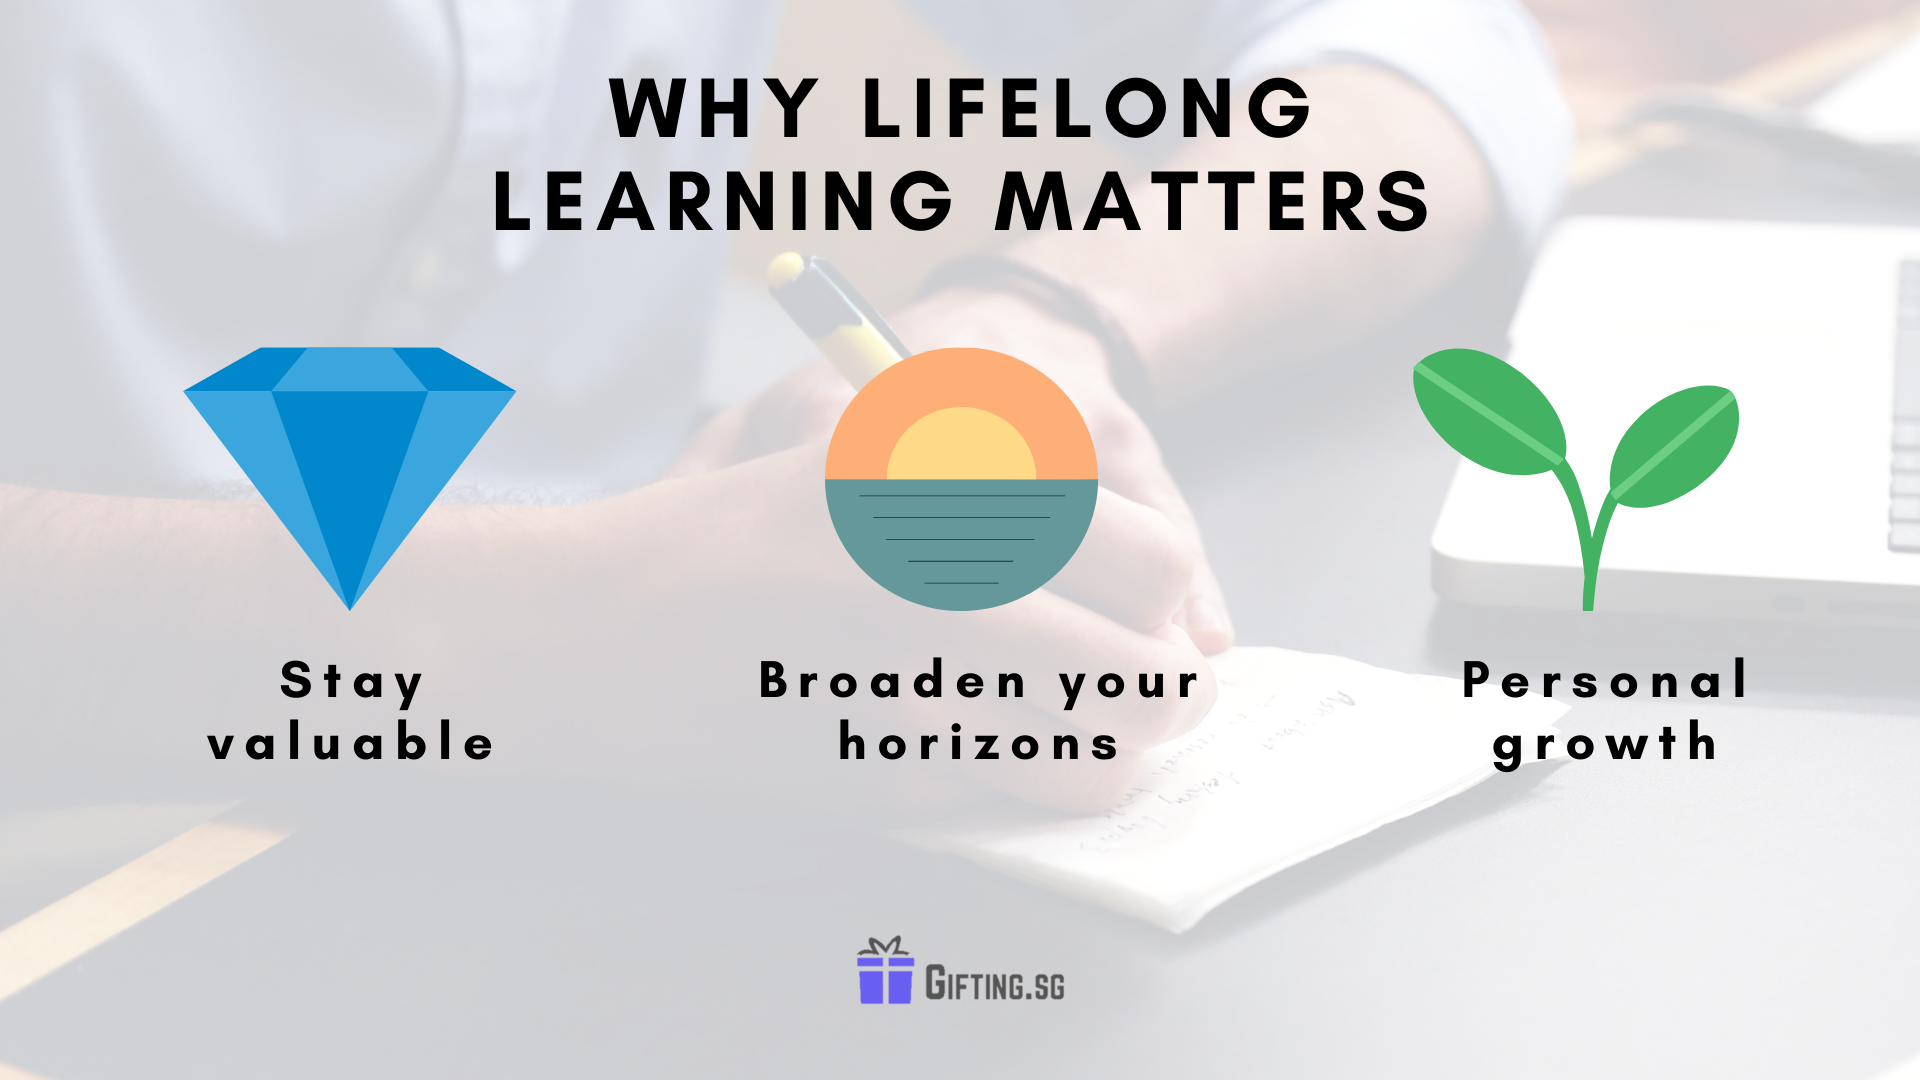 Why Lifelong Learning Matters